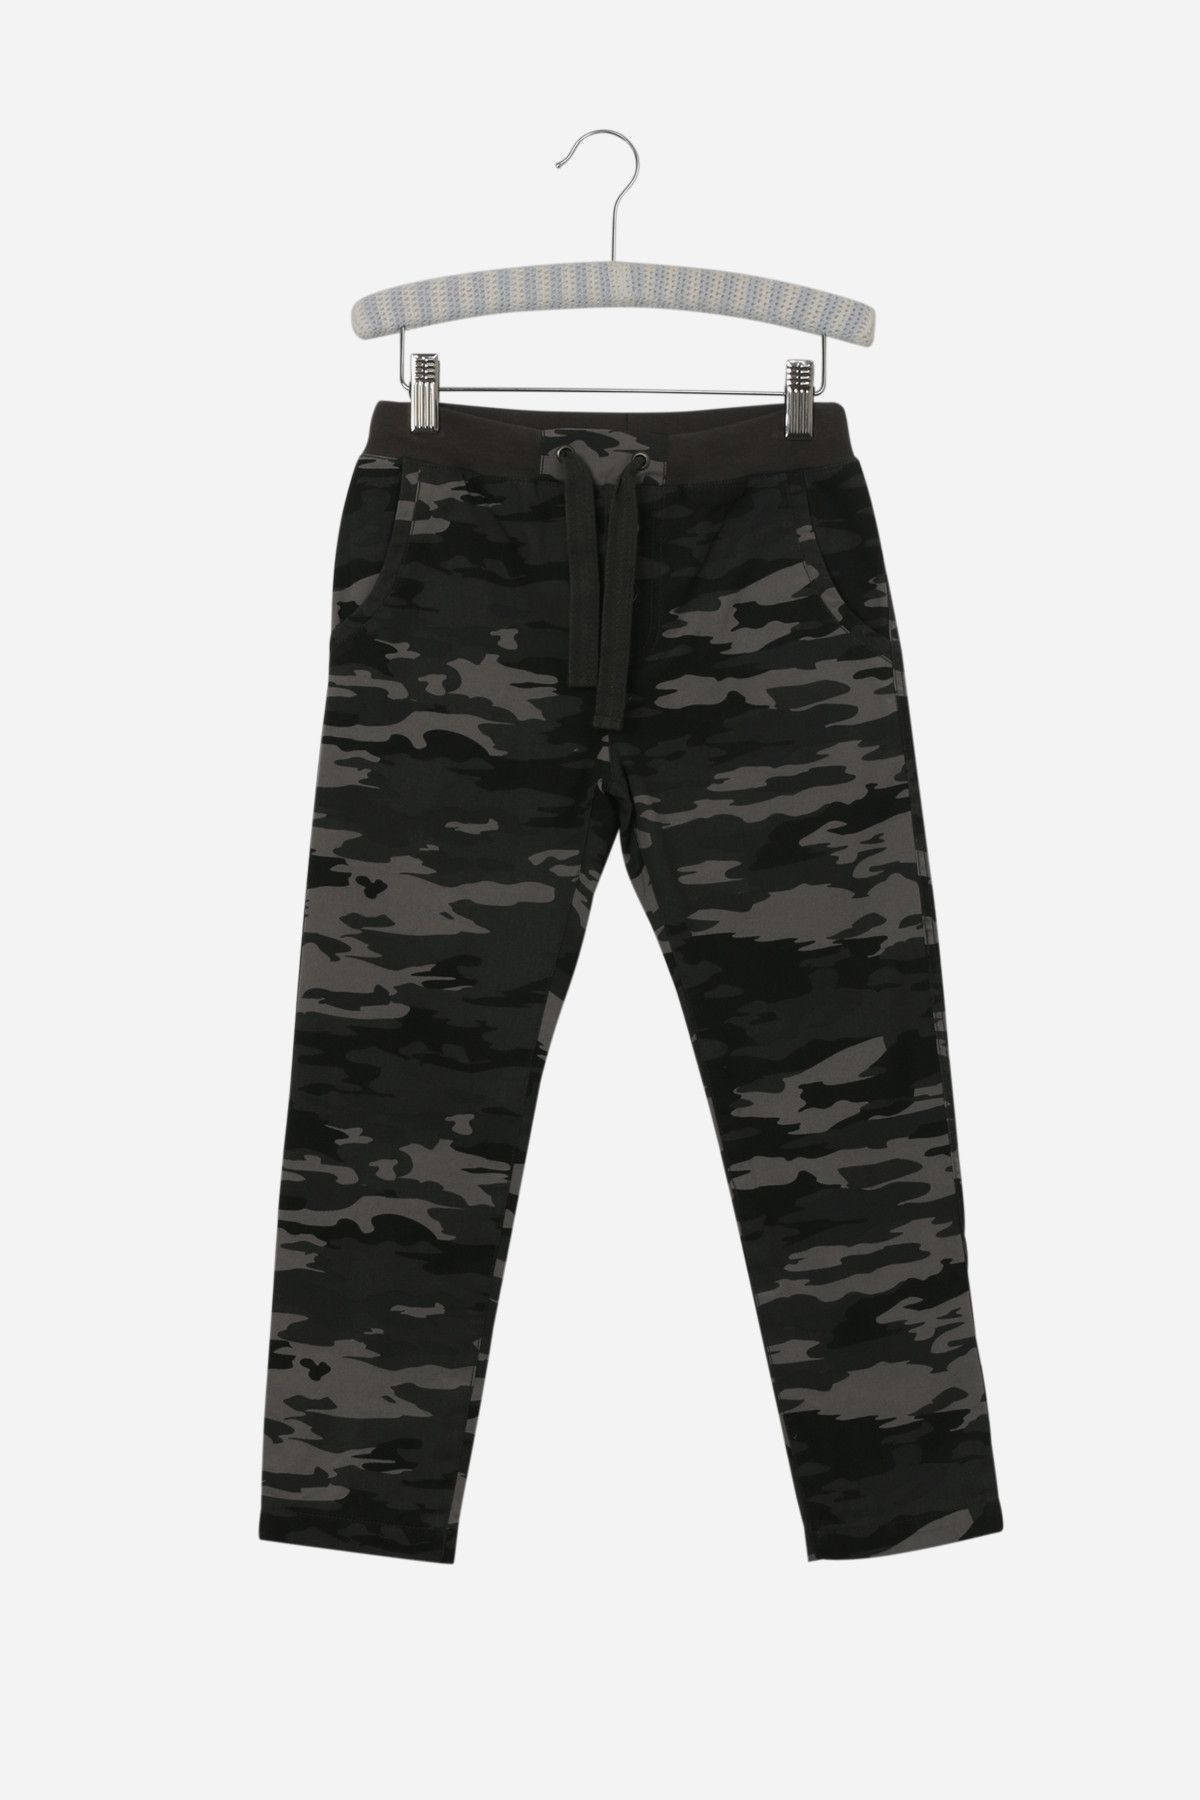 Wheat Camo Pants from Mini Ruby